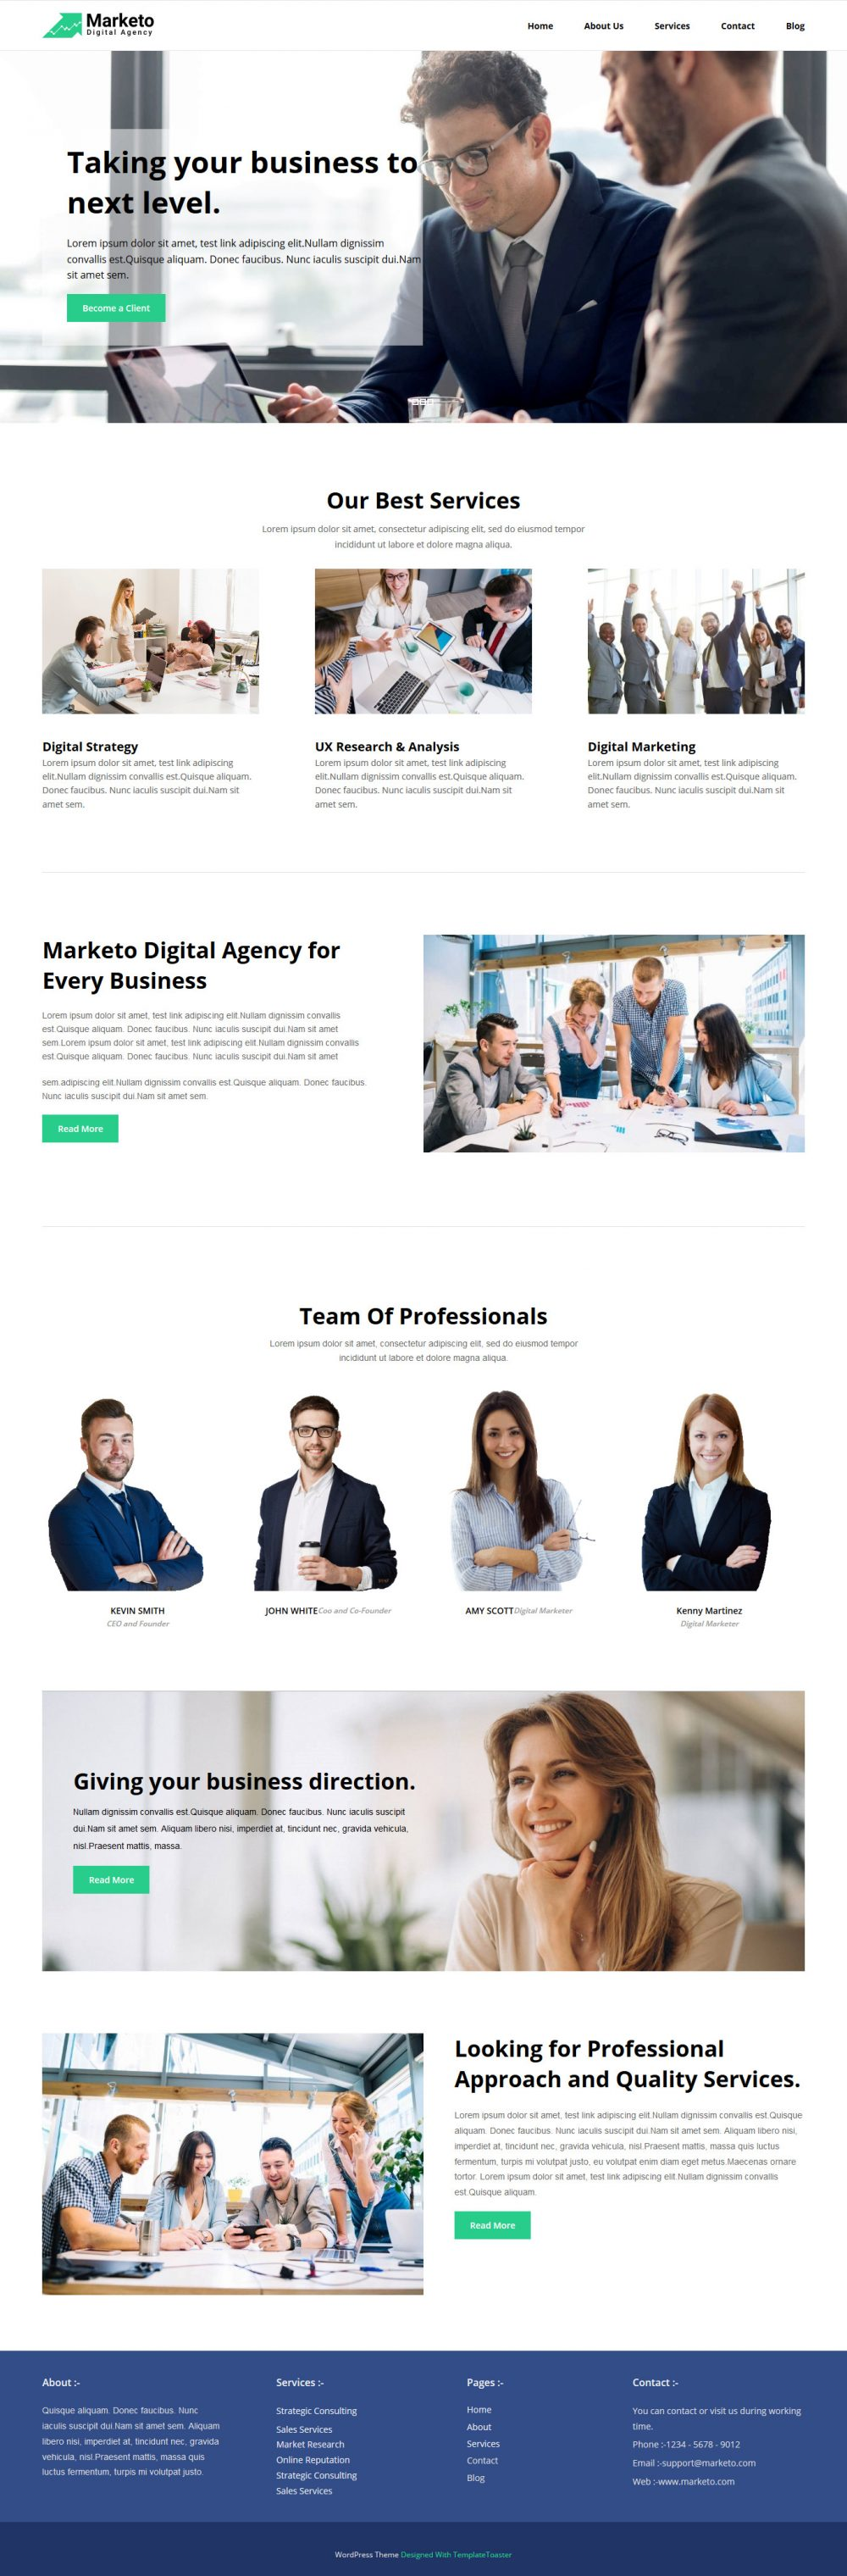 Marketo Marketing Consultancy Services HTML Template